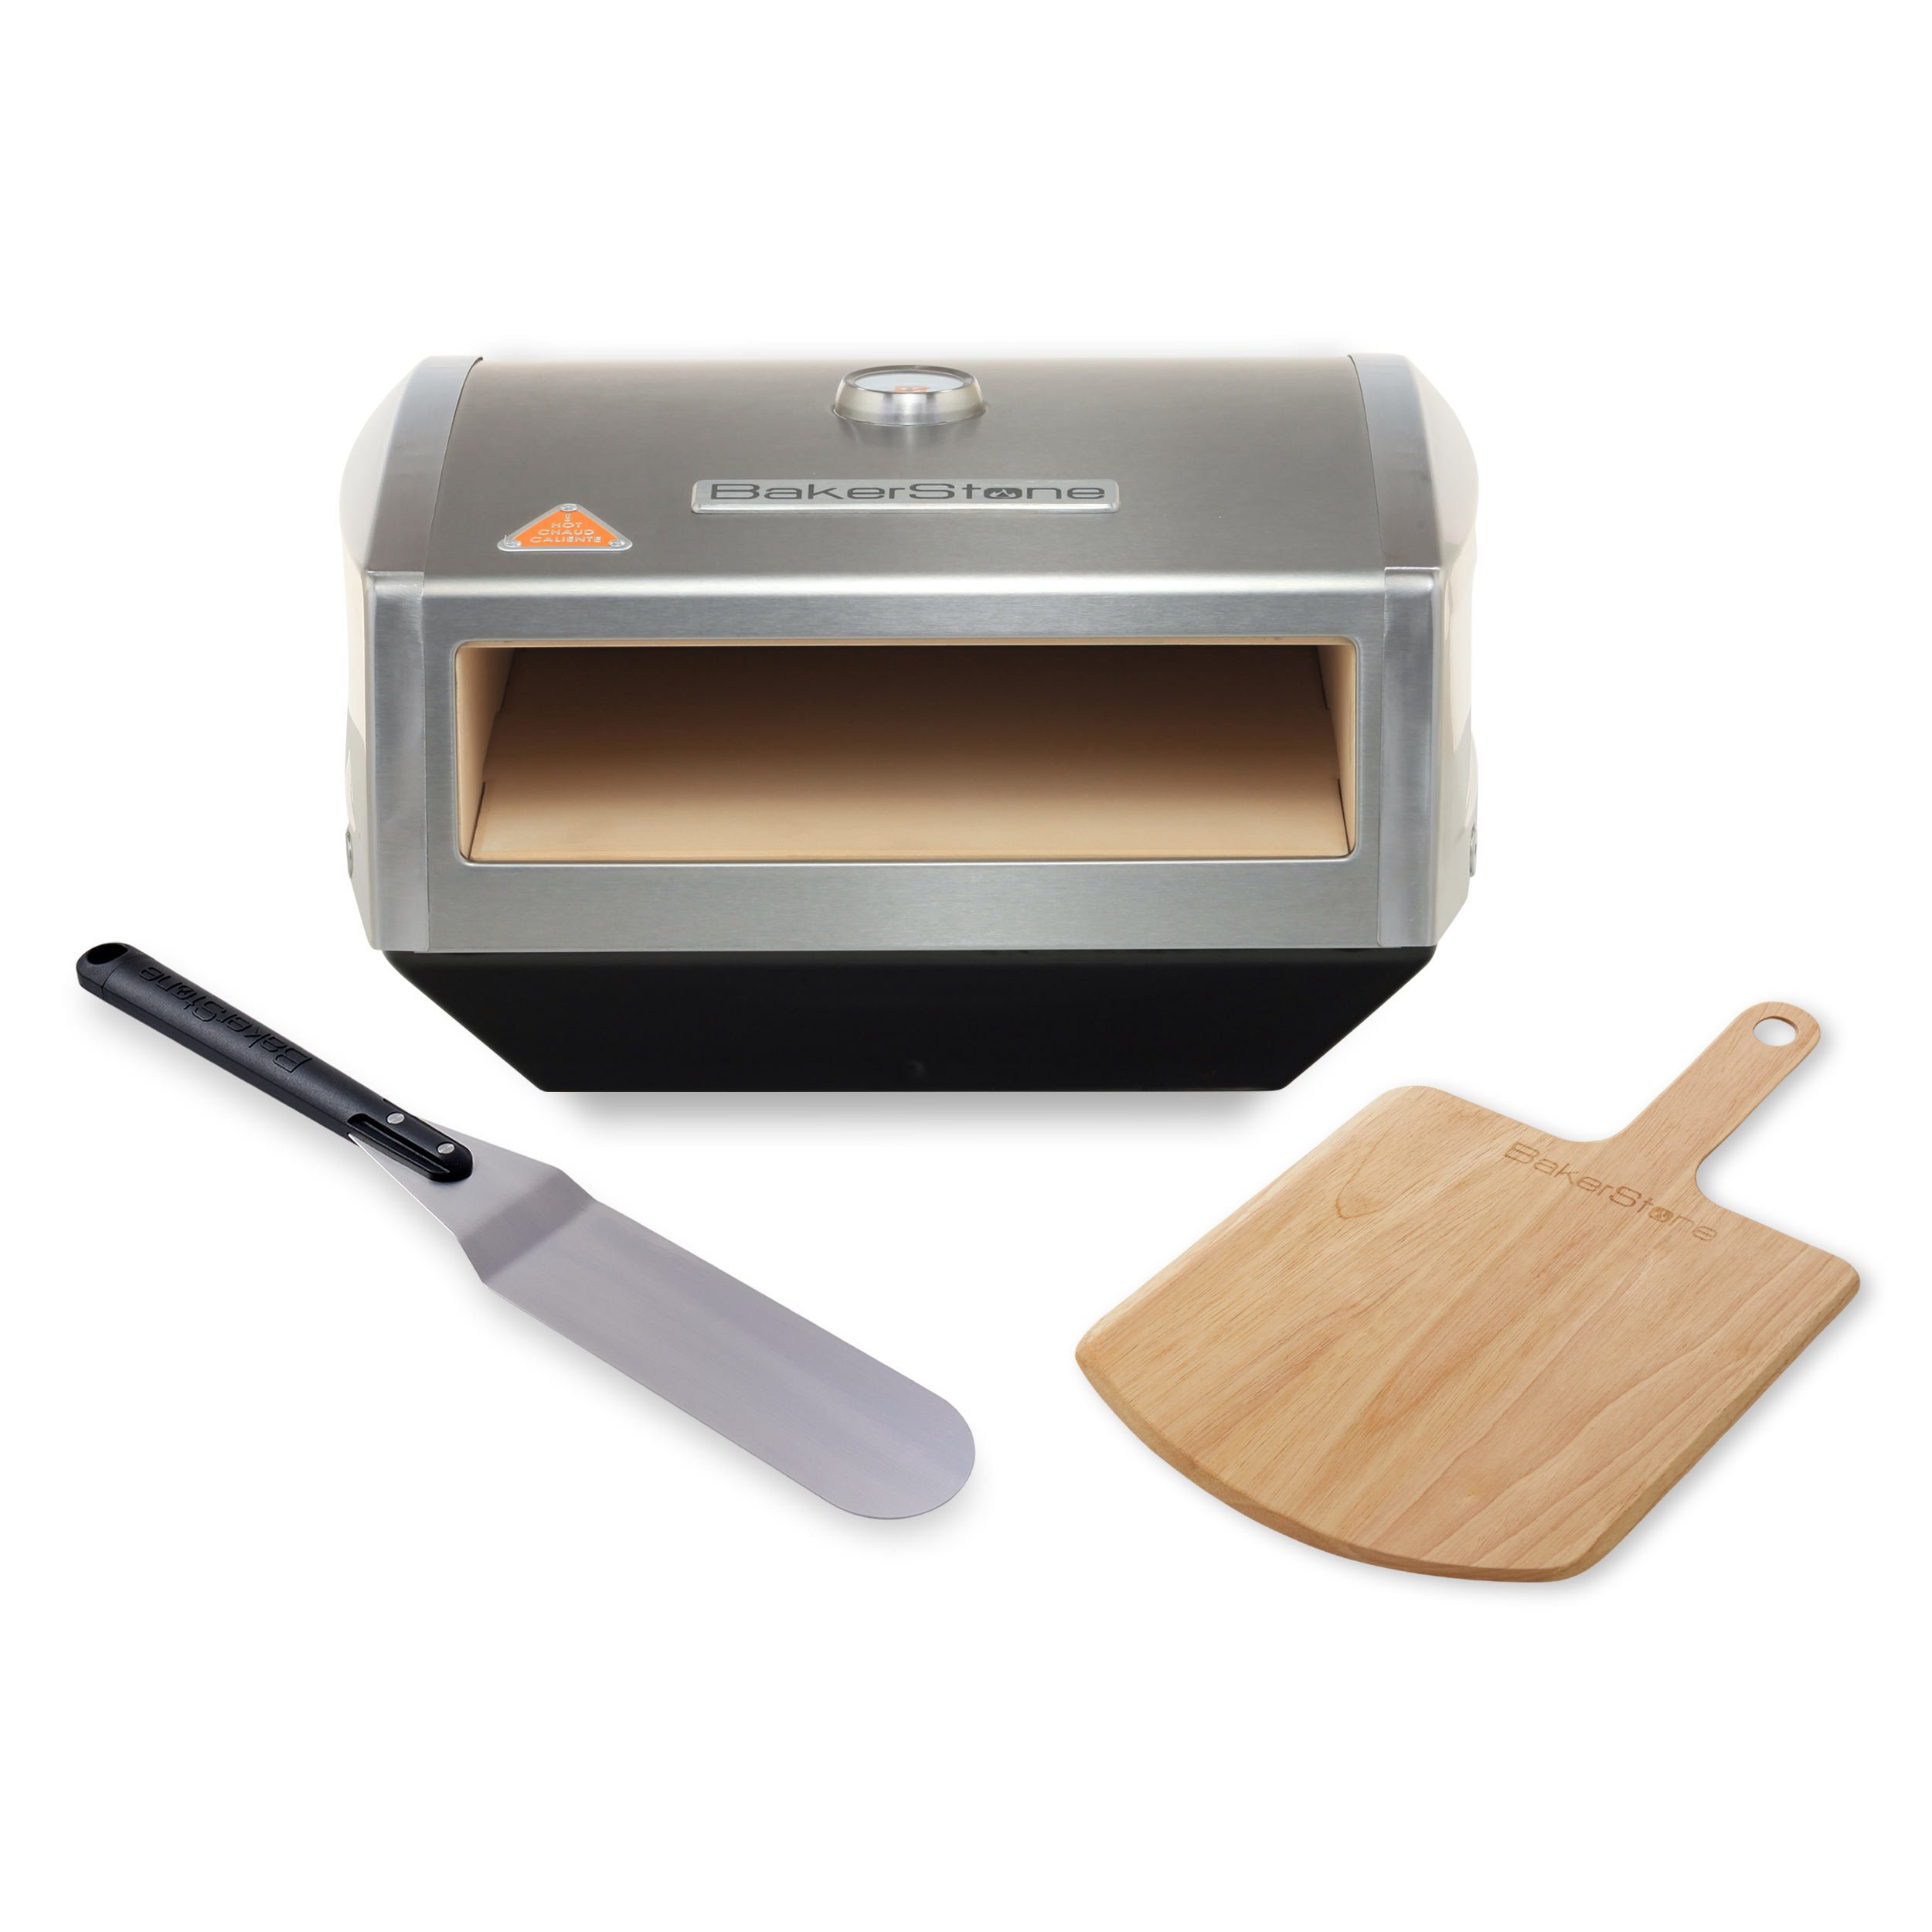 BakerStone Pizza Box, Gas Stove Top Oven (Stainless Steel) by BakerStone